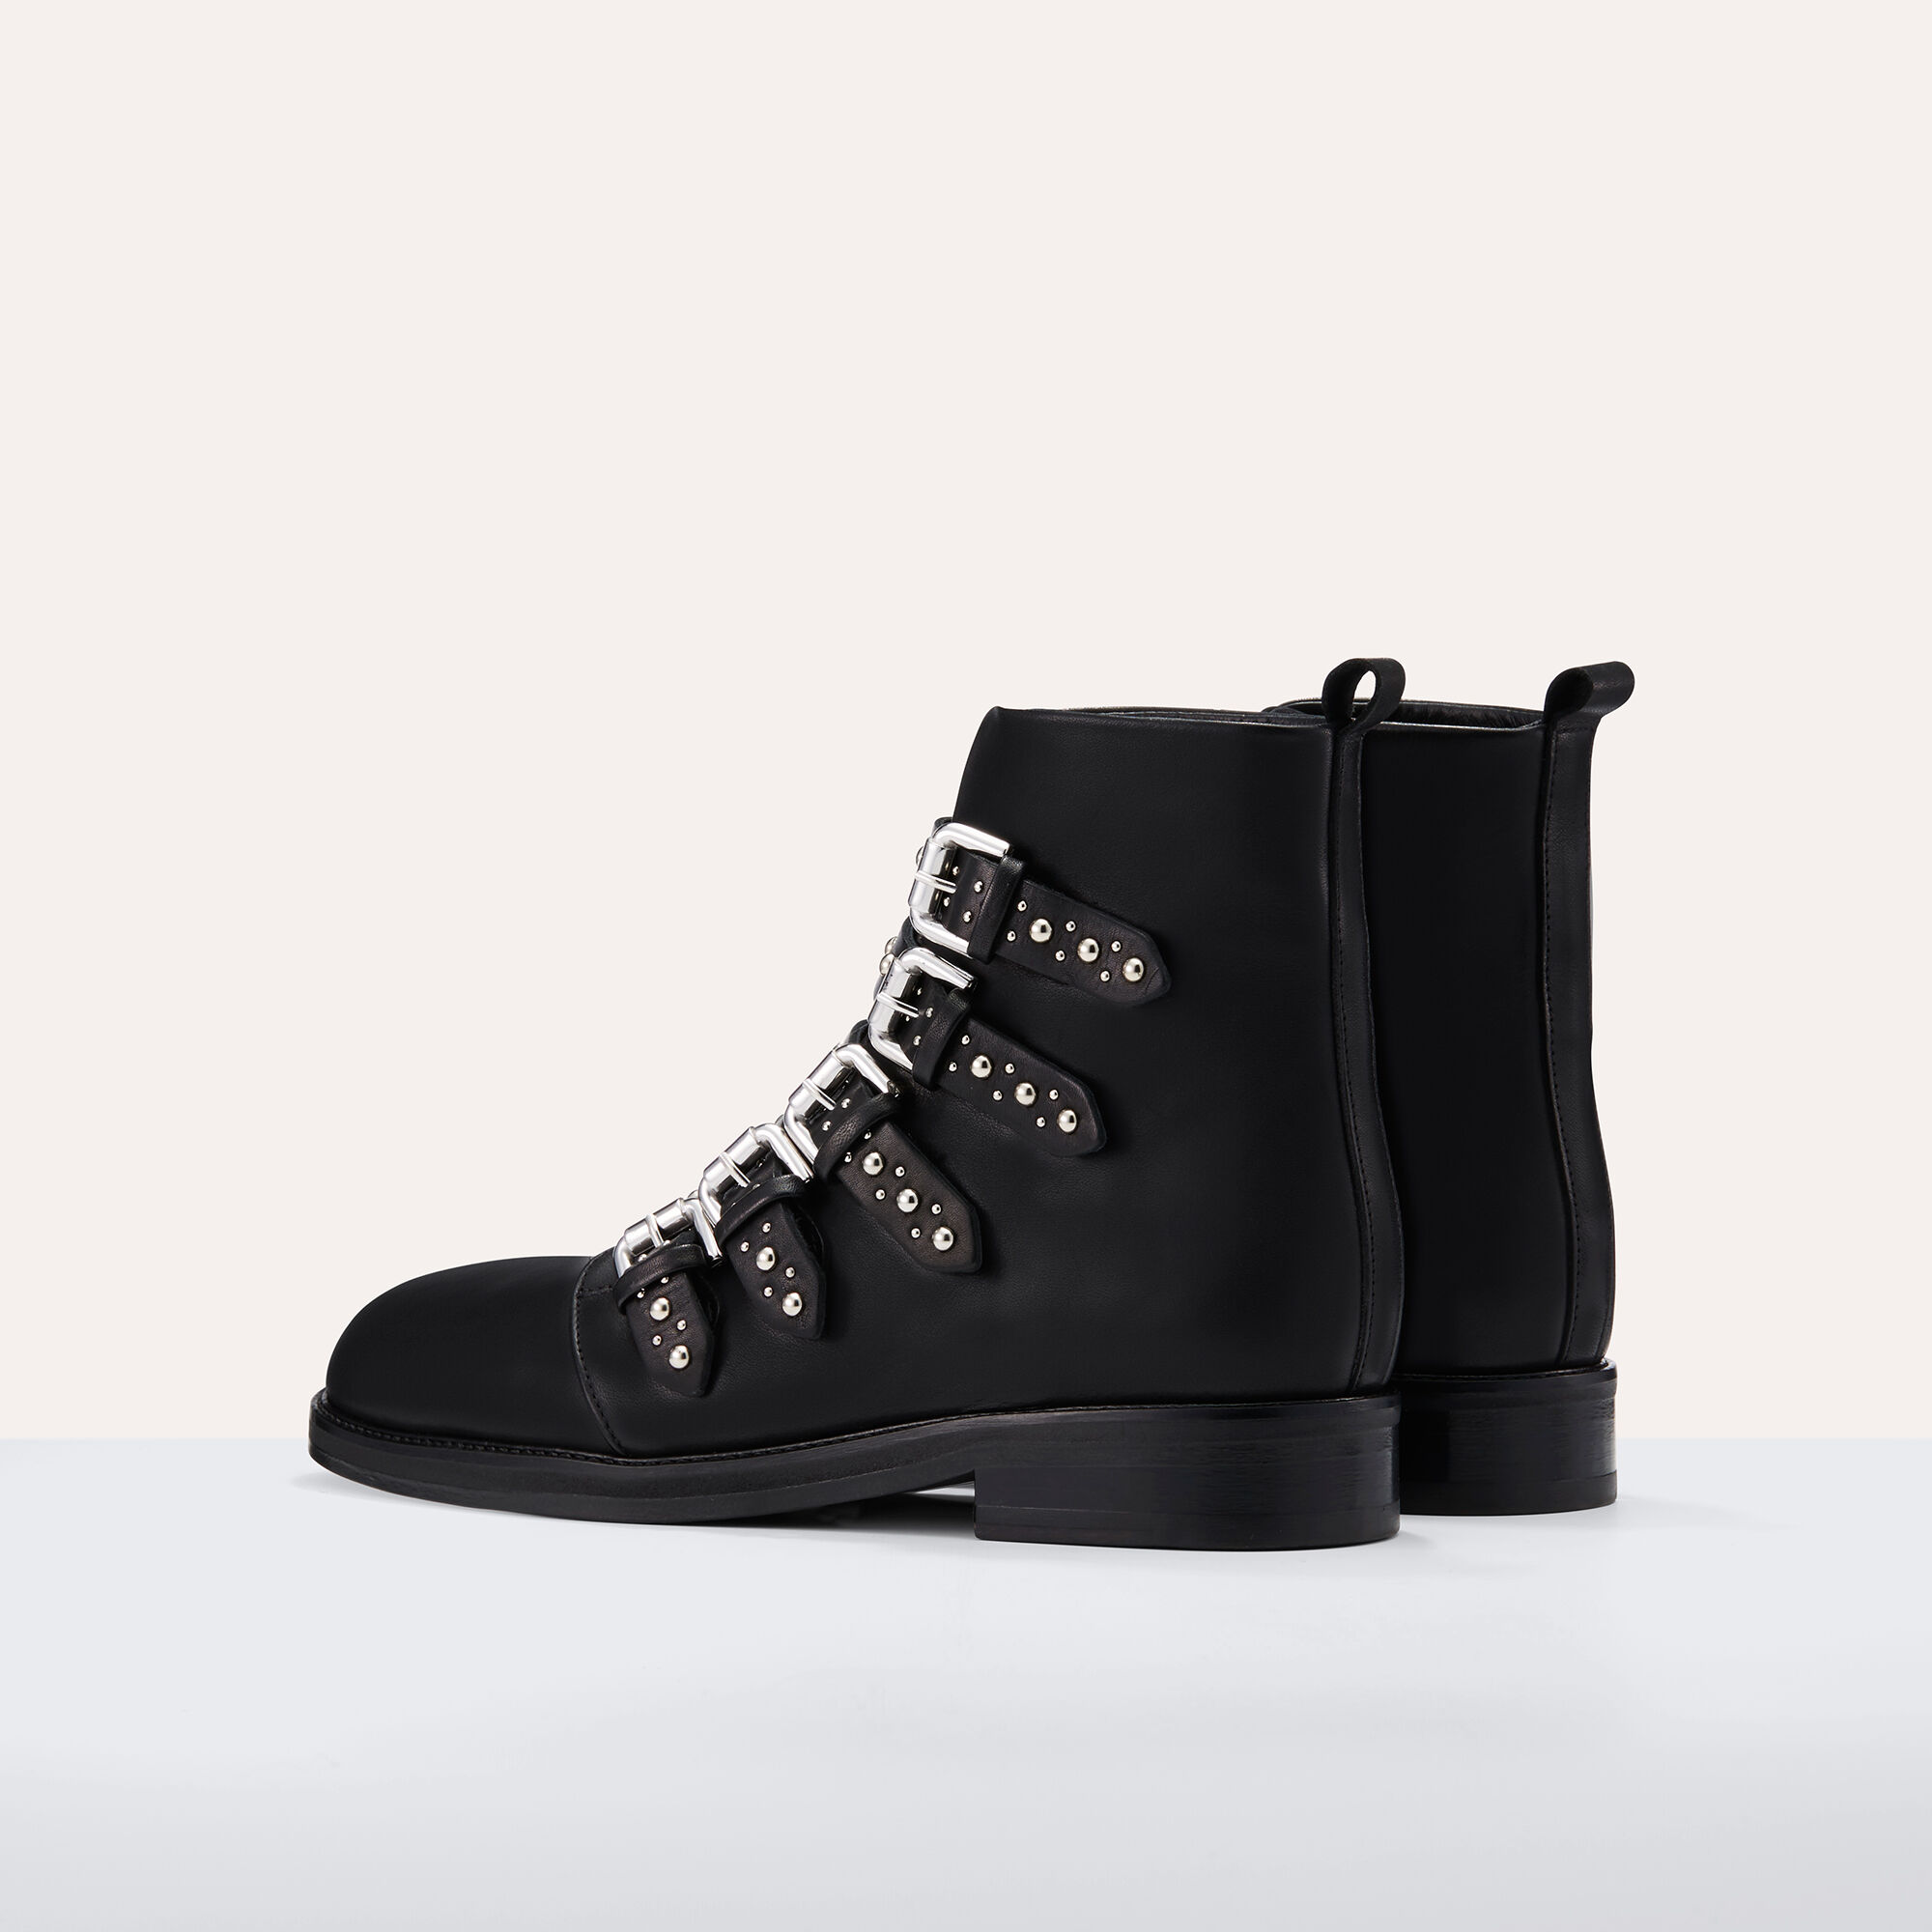 Looking For Outlet Many Kinds Of Maje Leather Ankle Boots Buy Cheap Get To Buy 2018 New How Much FRFsWI